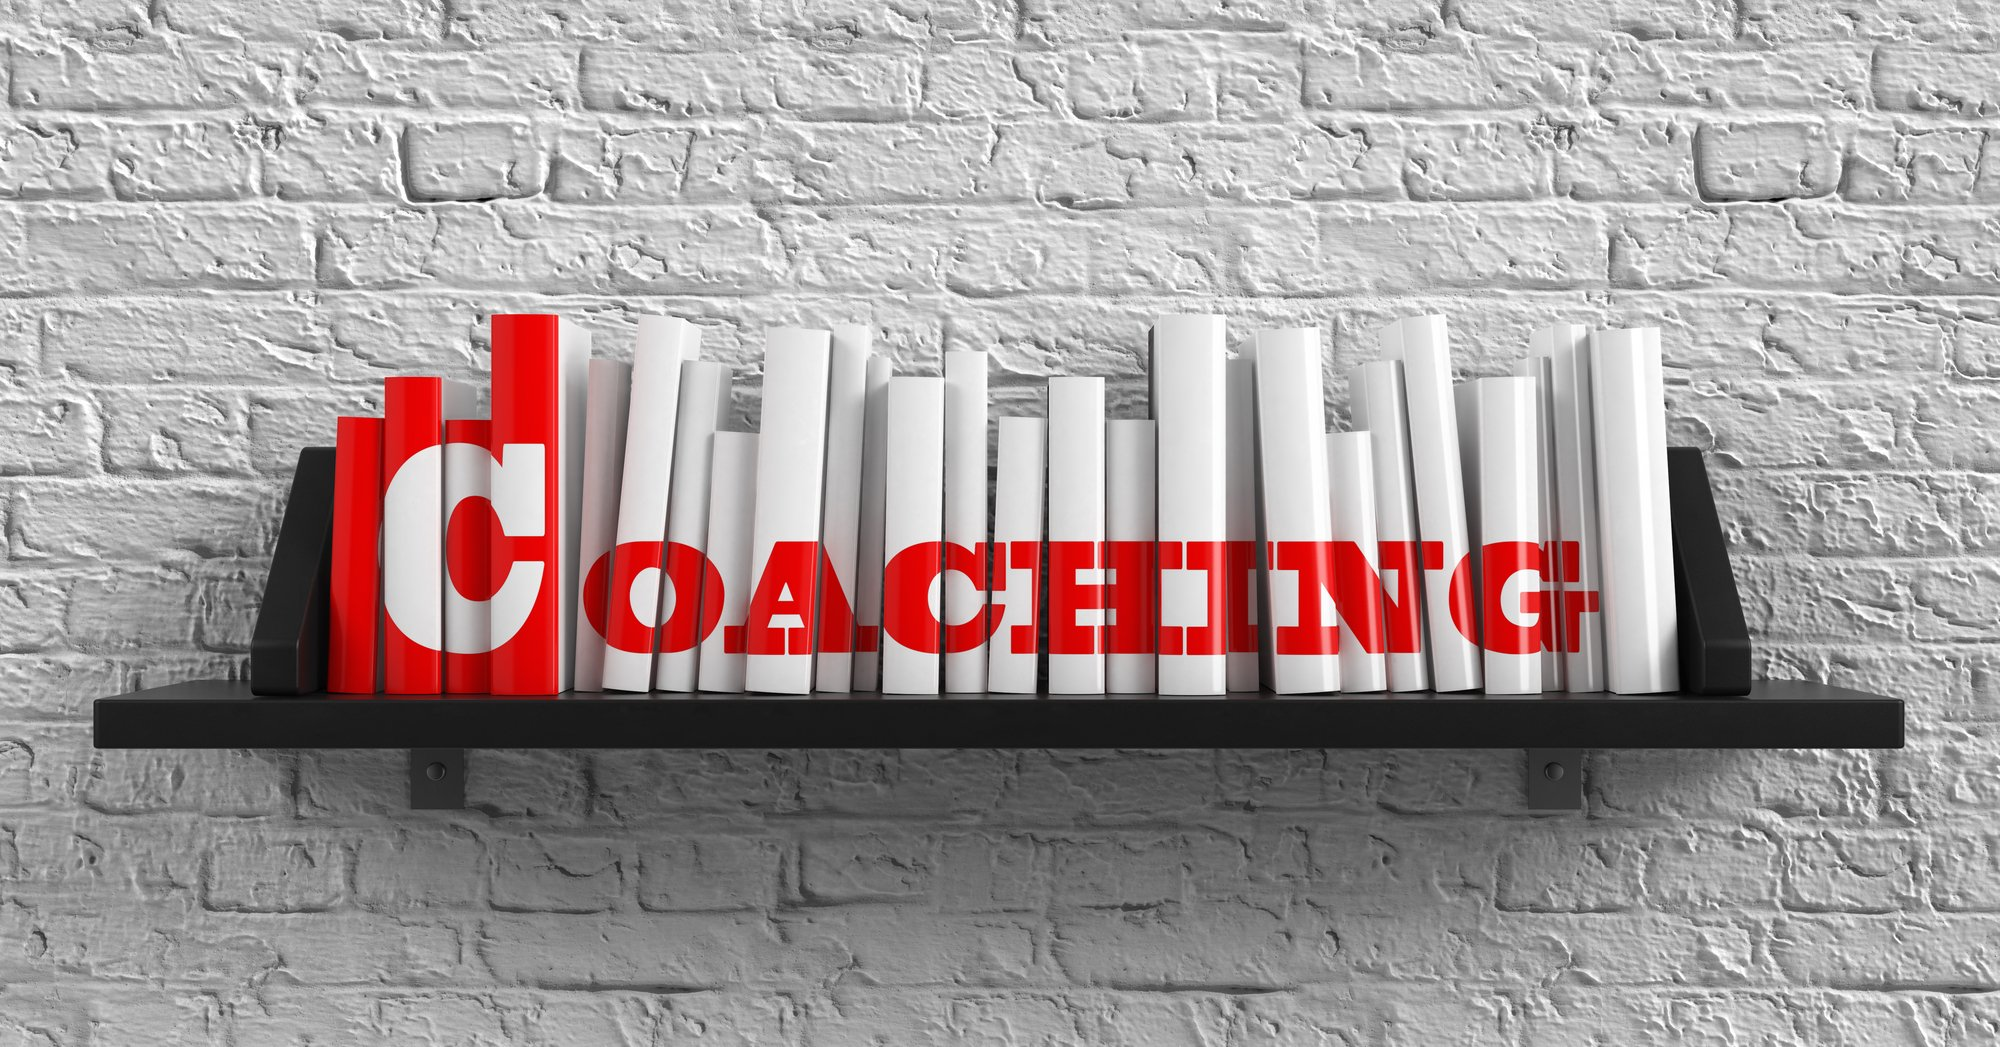 How much does life coach training cost